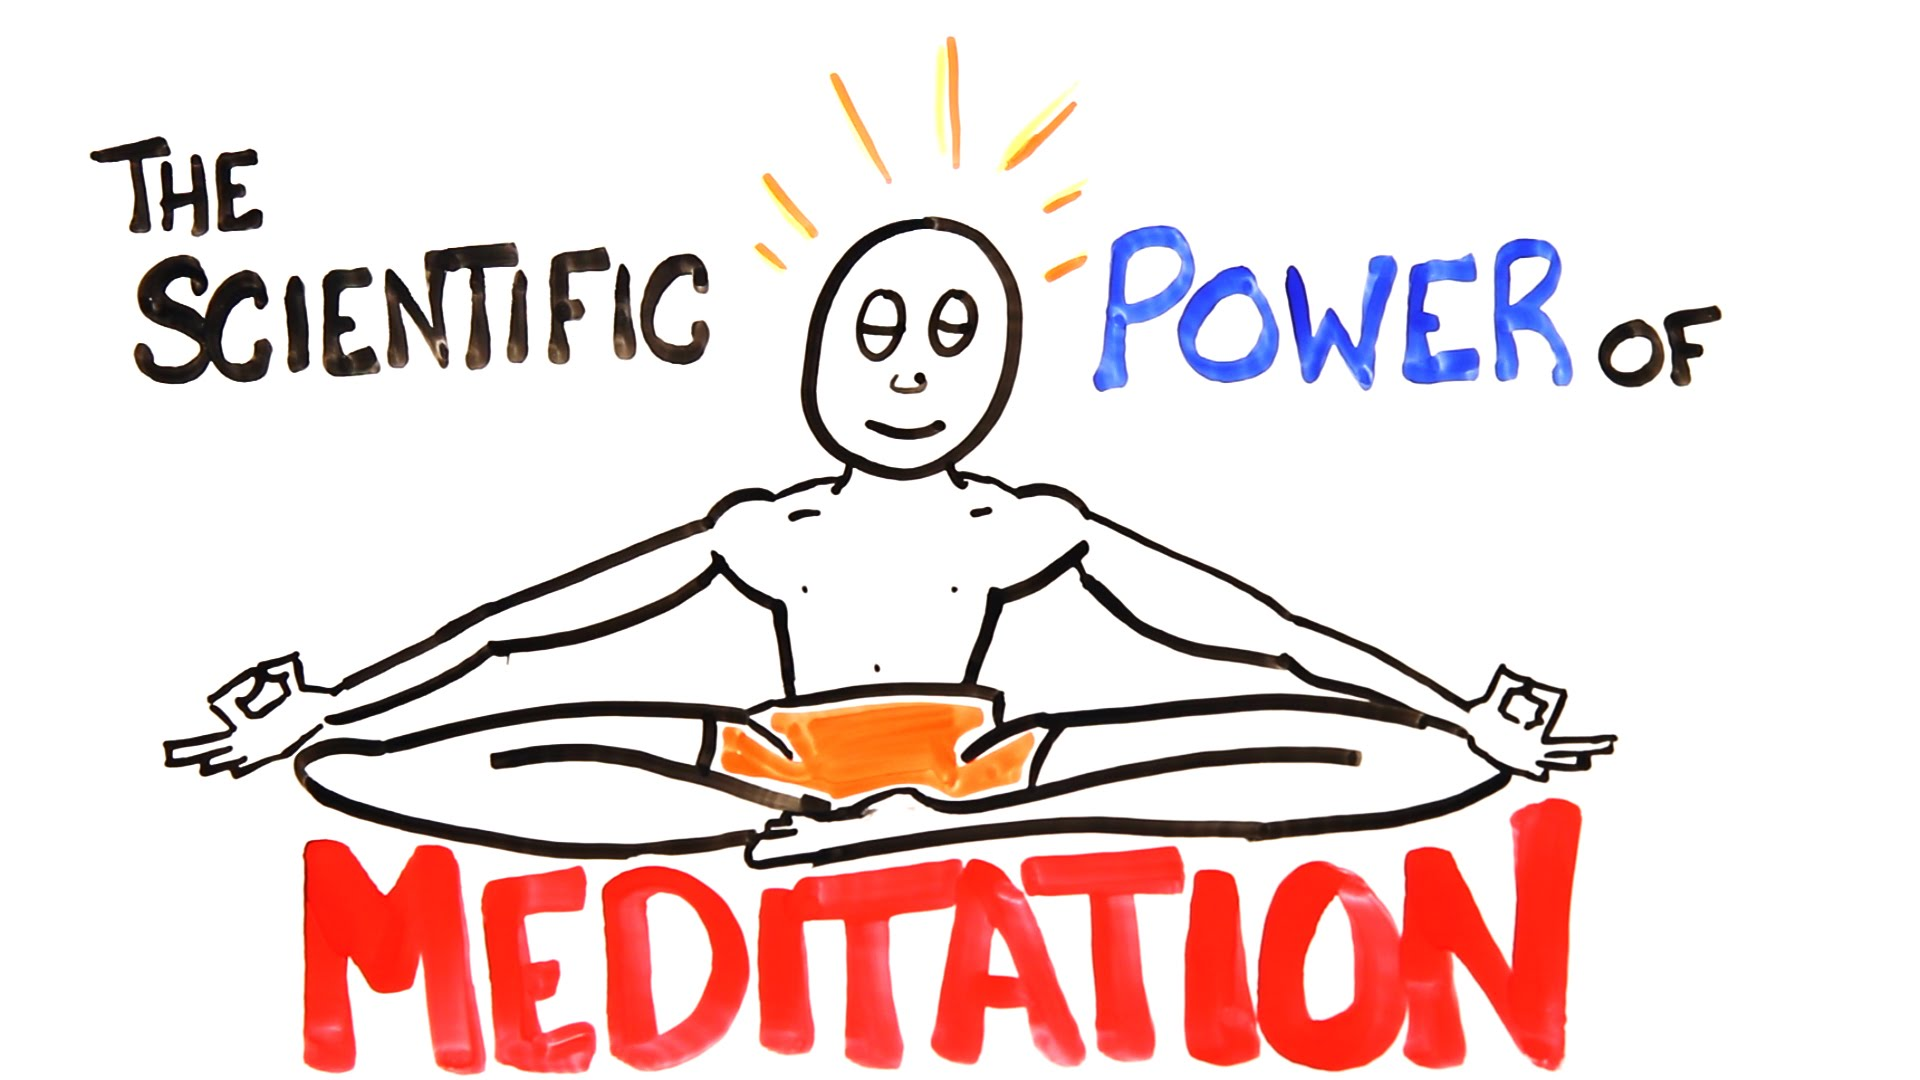 AsapSCIENCE Thoroughly Explains the Scientific Power of Meditation